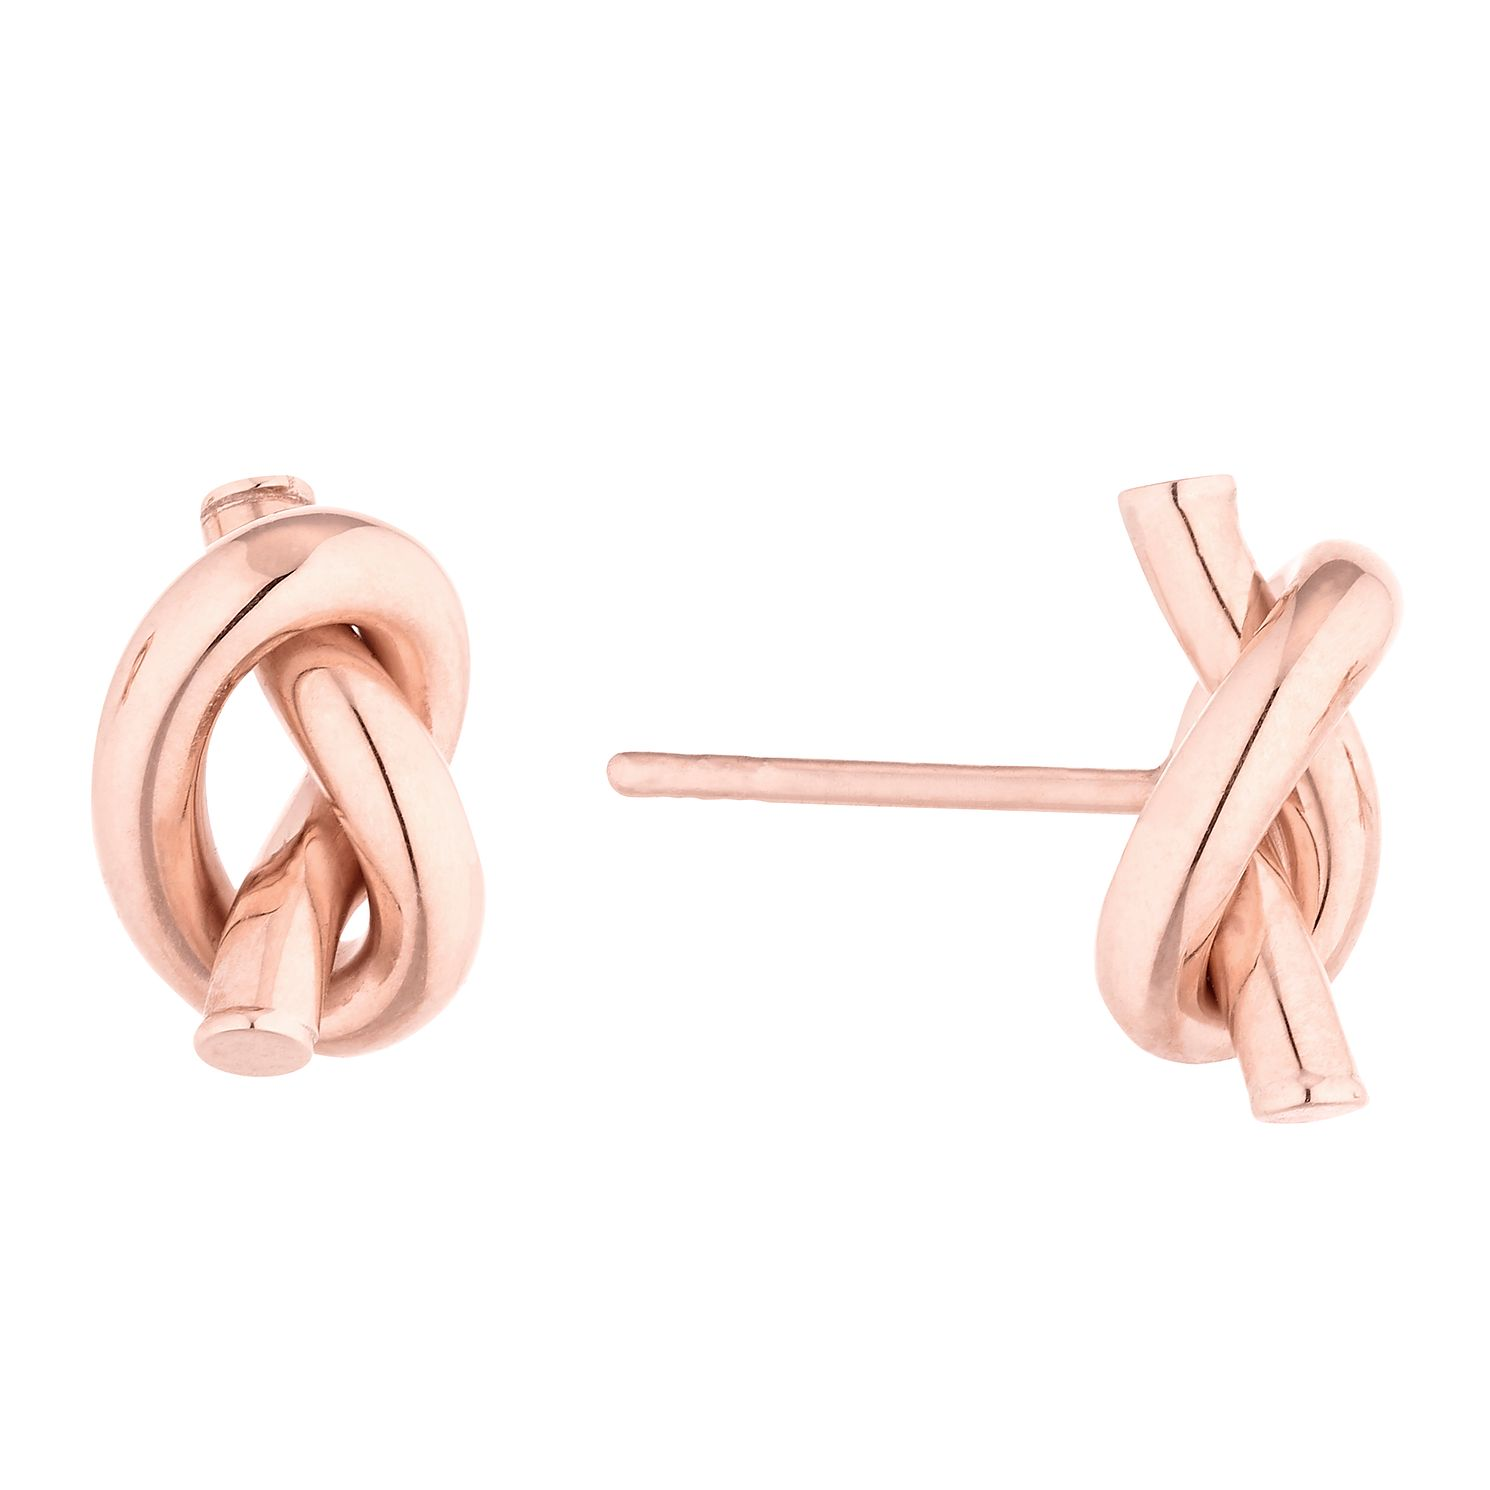 9ct Rose Gold Hand Tied Knot Stud Earrings - Product number 4517652